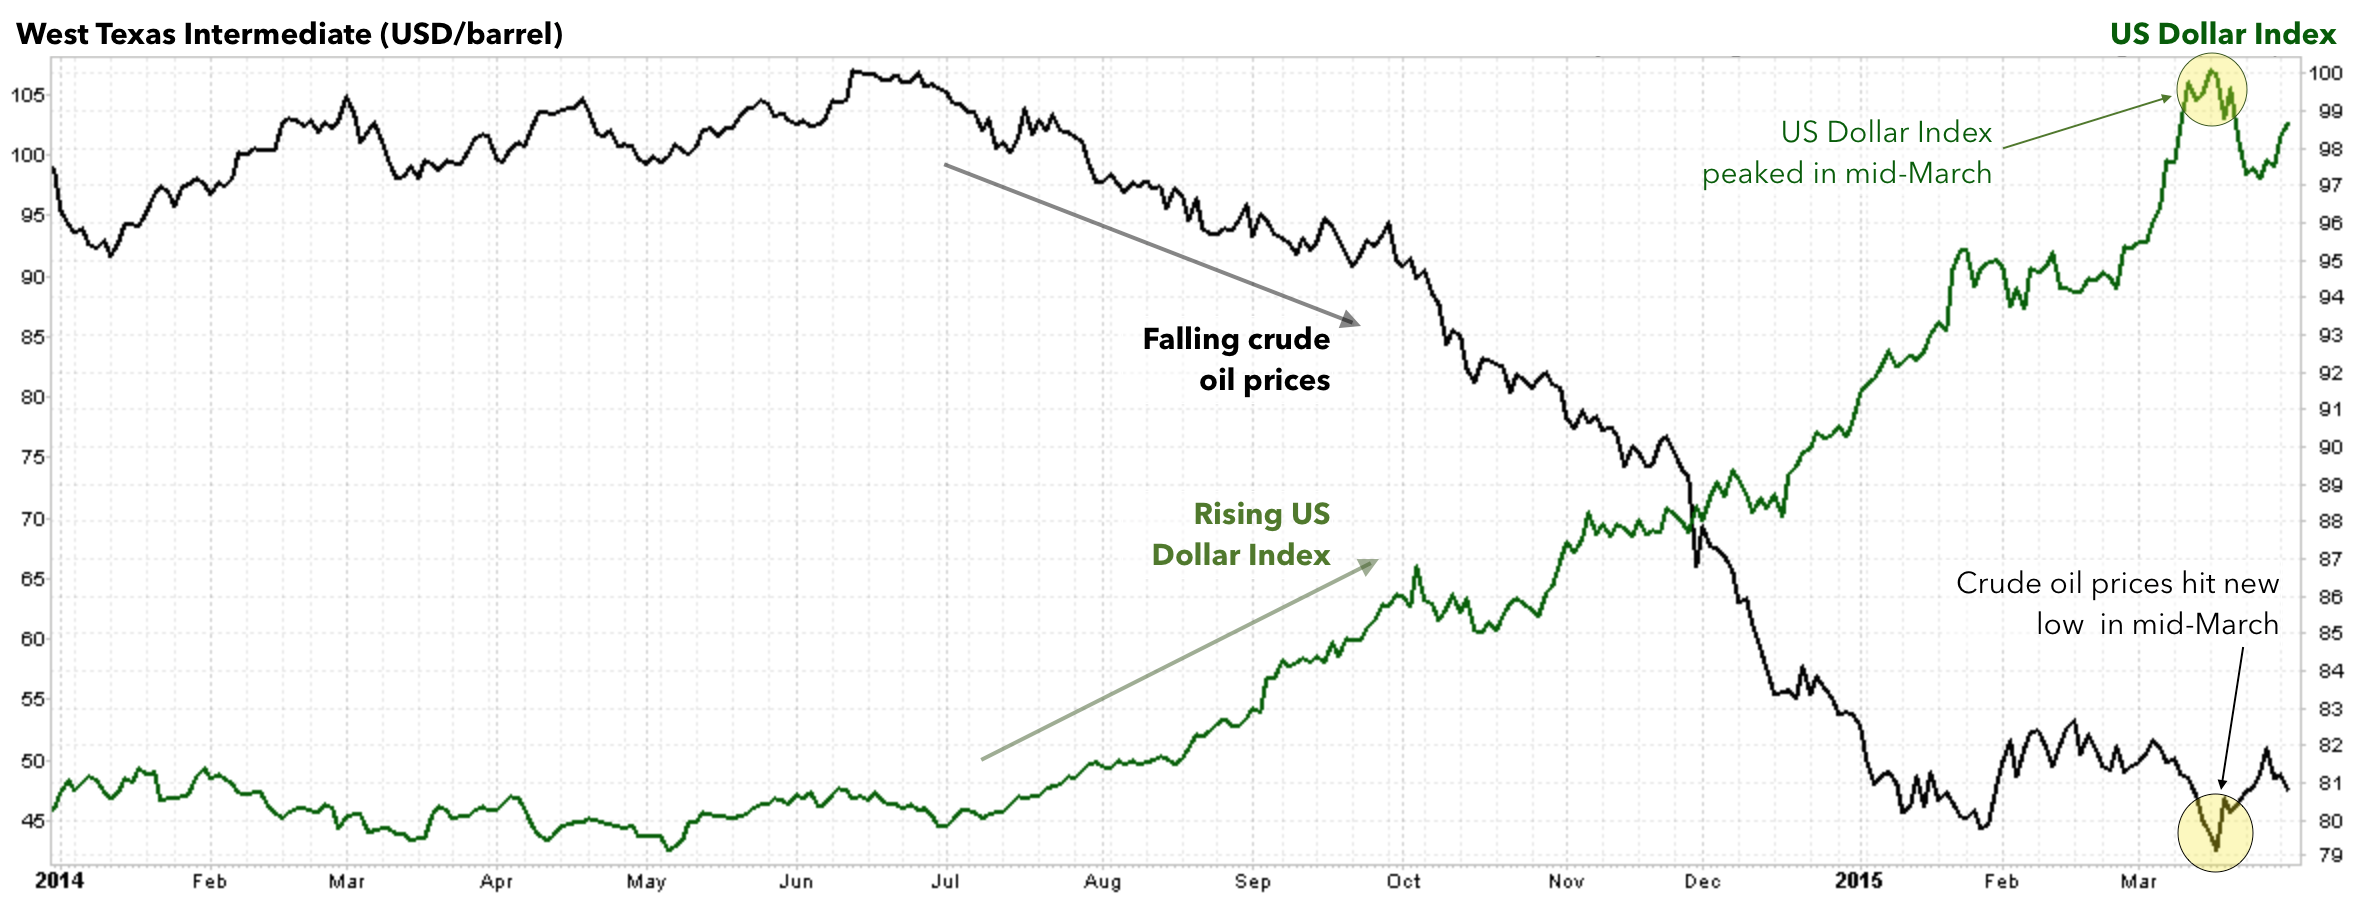 CRUDE OIL PRICES VERSUS US DOLLAR INDEX, JANUARY 2014 TO PRESENT   CLICK  HERE  FOR A LIVE VERSION OF THIS CHART >